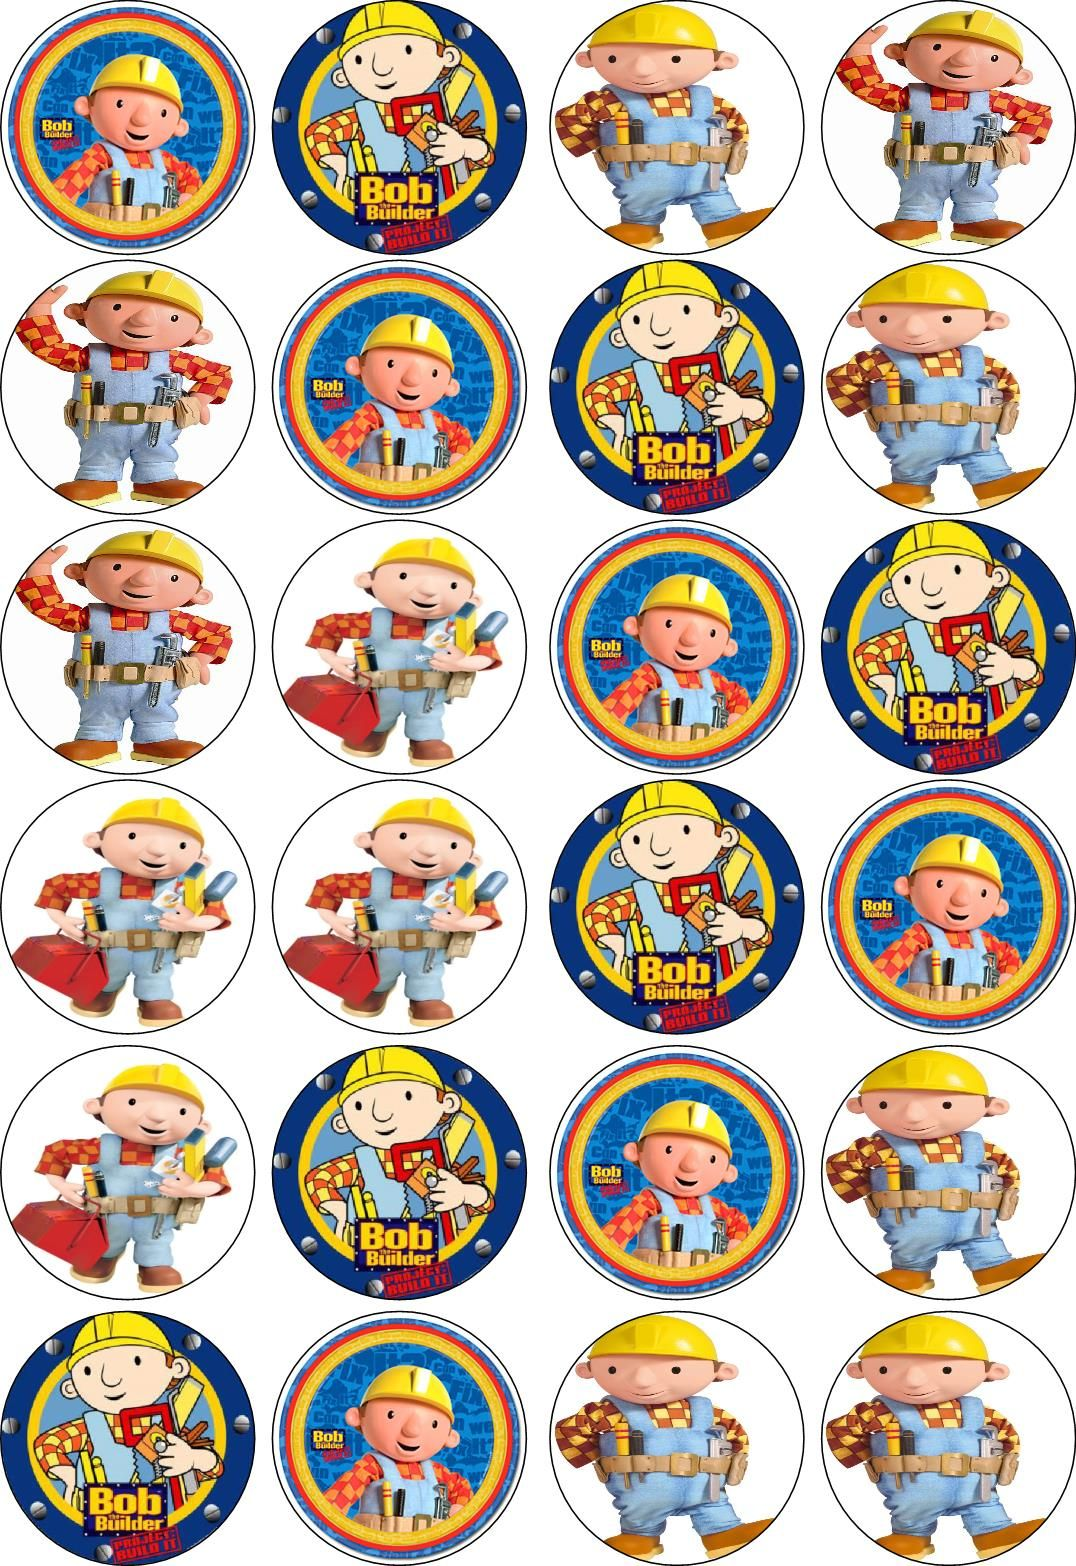 bob the builder cupcake toppers | Bob the Builder B-Day Party ...